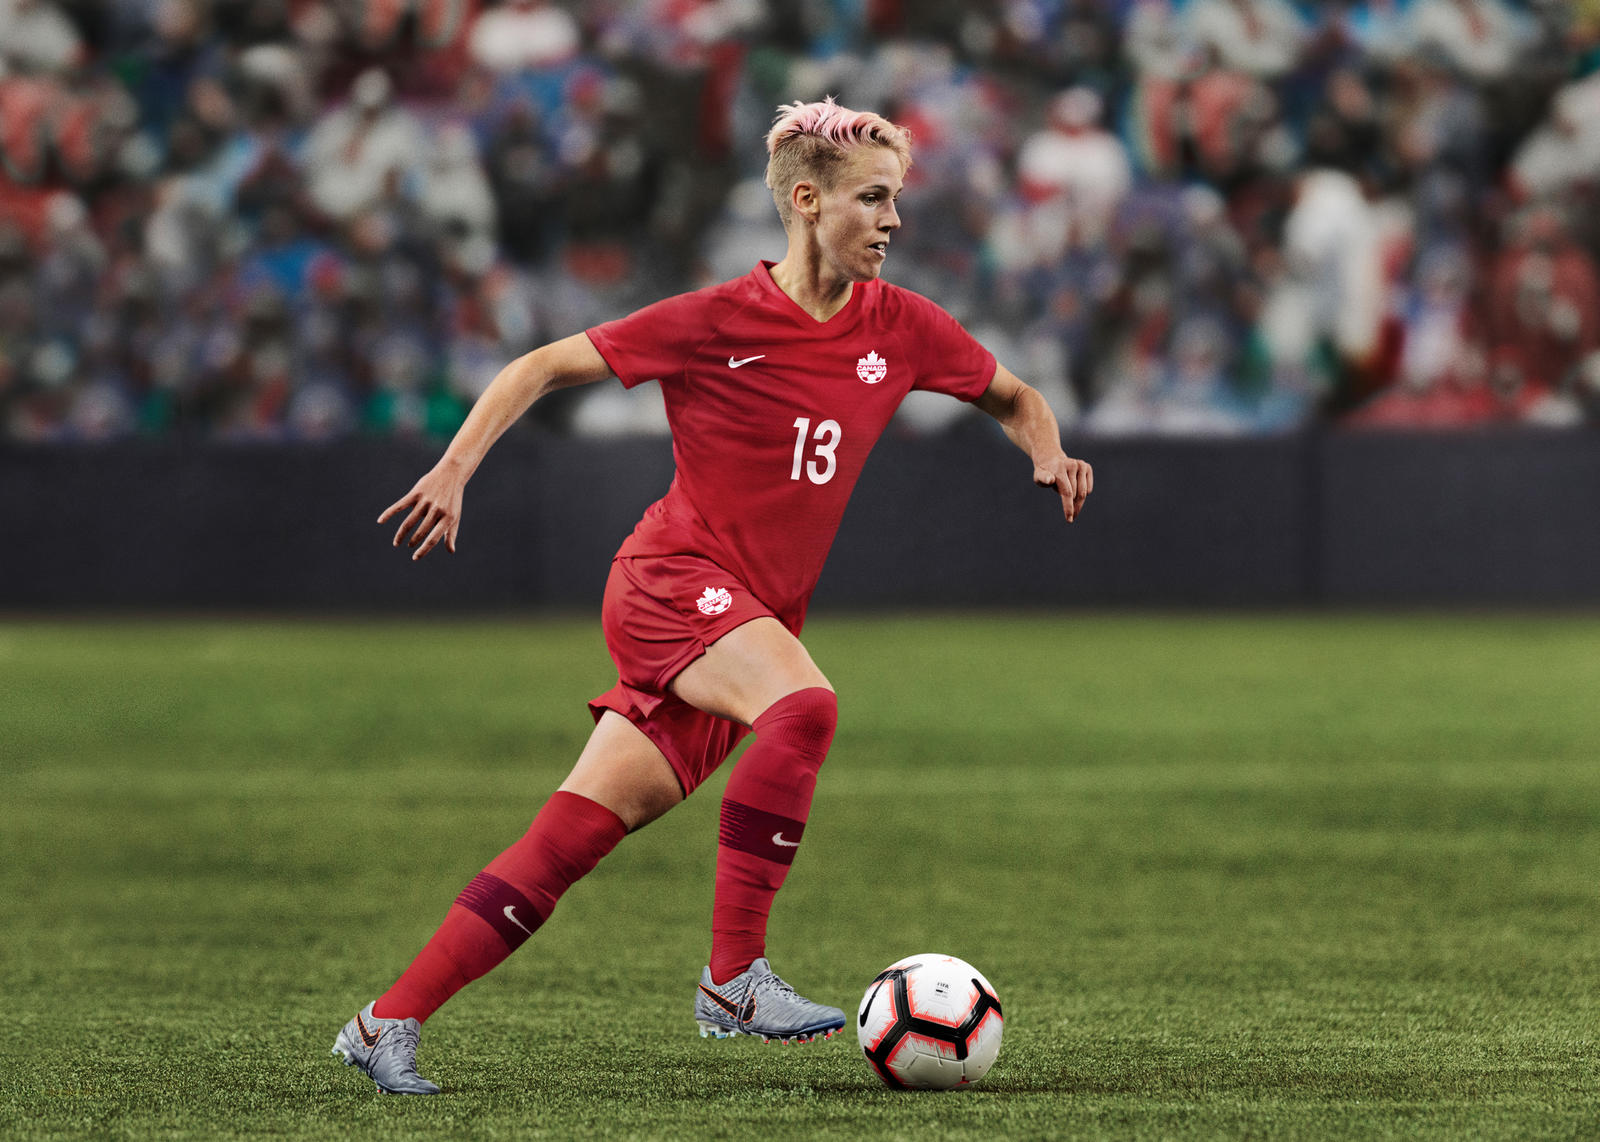 canada-national-team-kit-2019-performance-003_85971.jpg